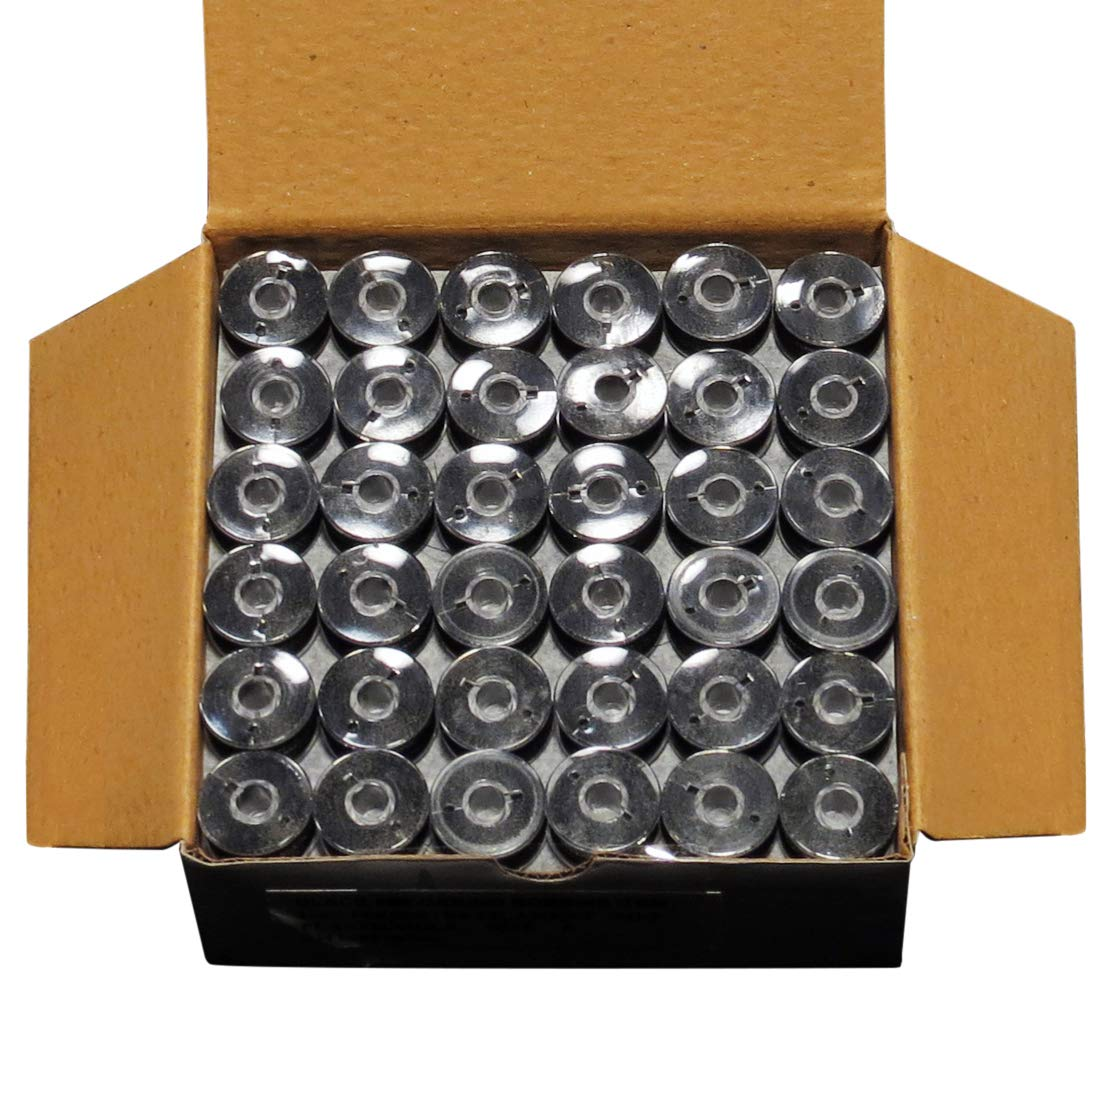 ThreadNanny New 144 Class A BLACK Pre-Wound Bobbins for BROTHER Embroidery Machines Compatible with SE 270D, SE 400, SE350, PE-700, PE700II, PE-750D, PE-770 by ThreadNanny